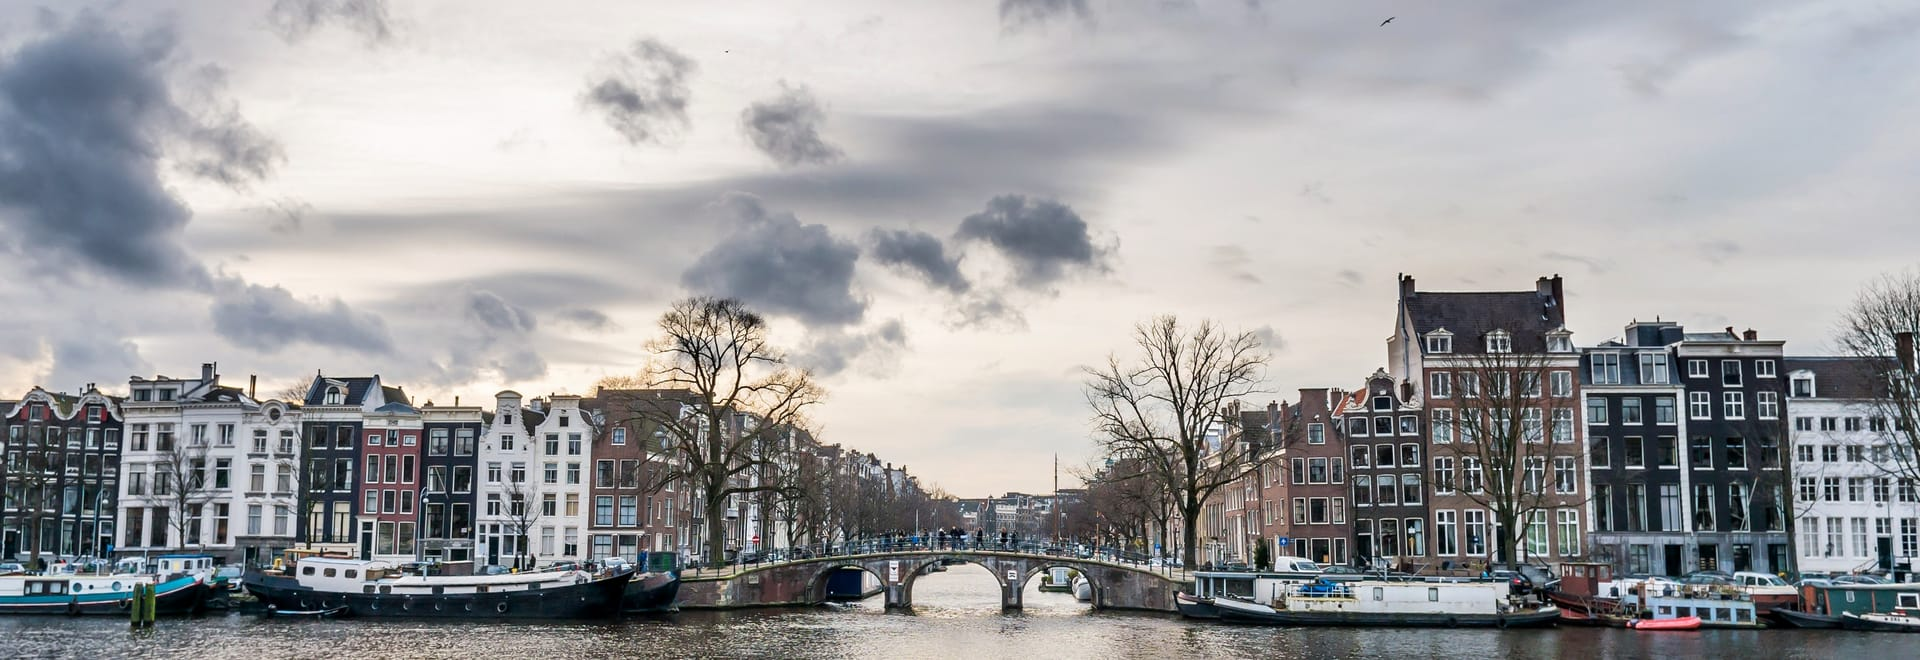 50 Best Places to Visit in Amsterdam